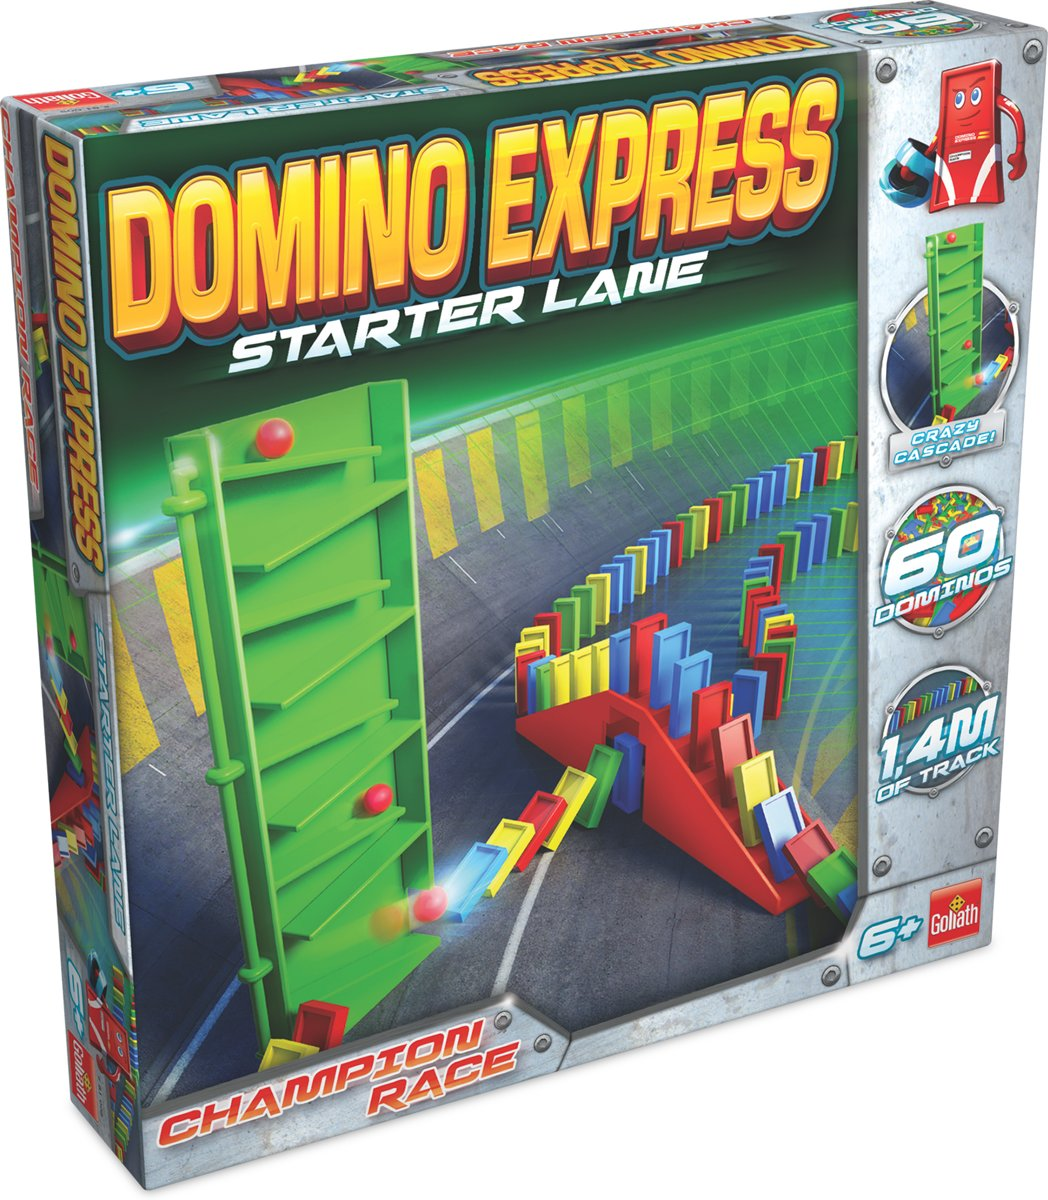 Domino Express Starter Lane 16